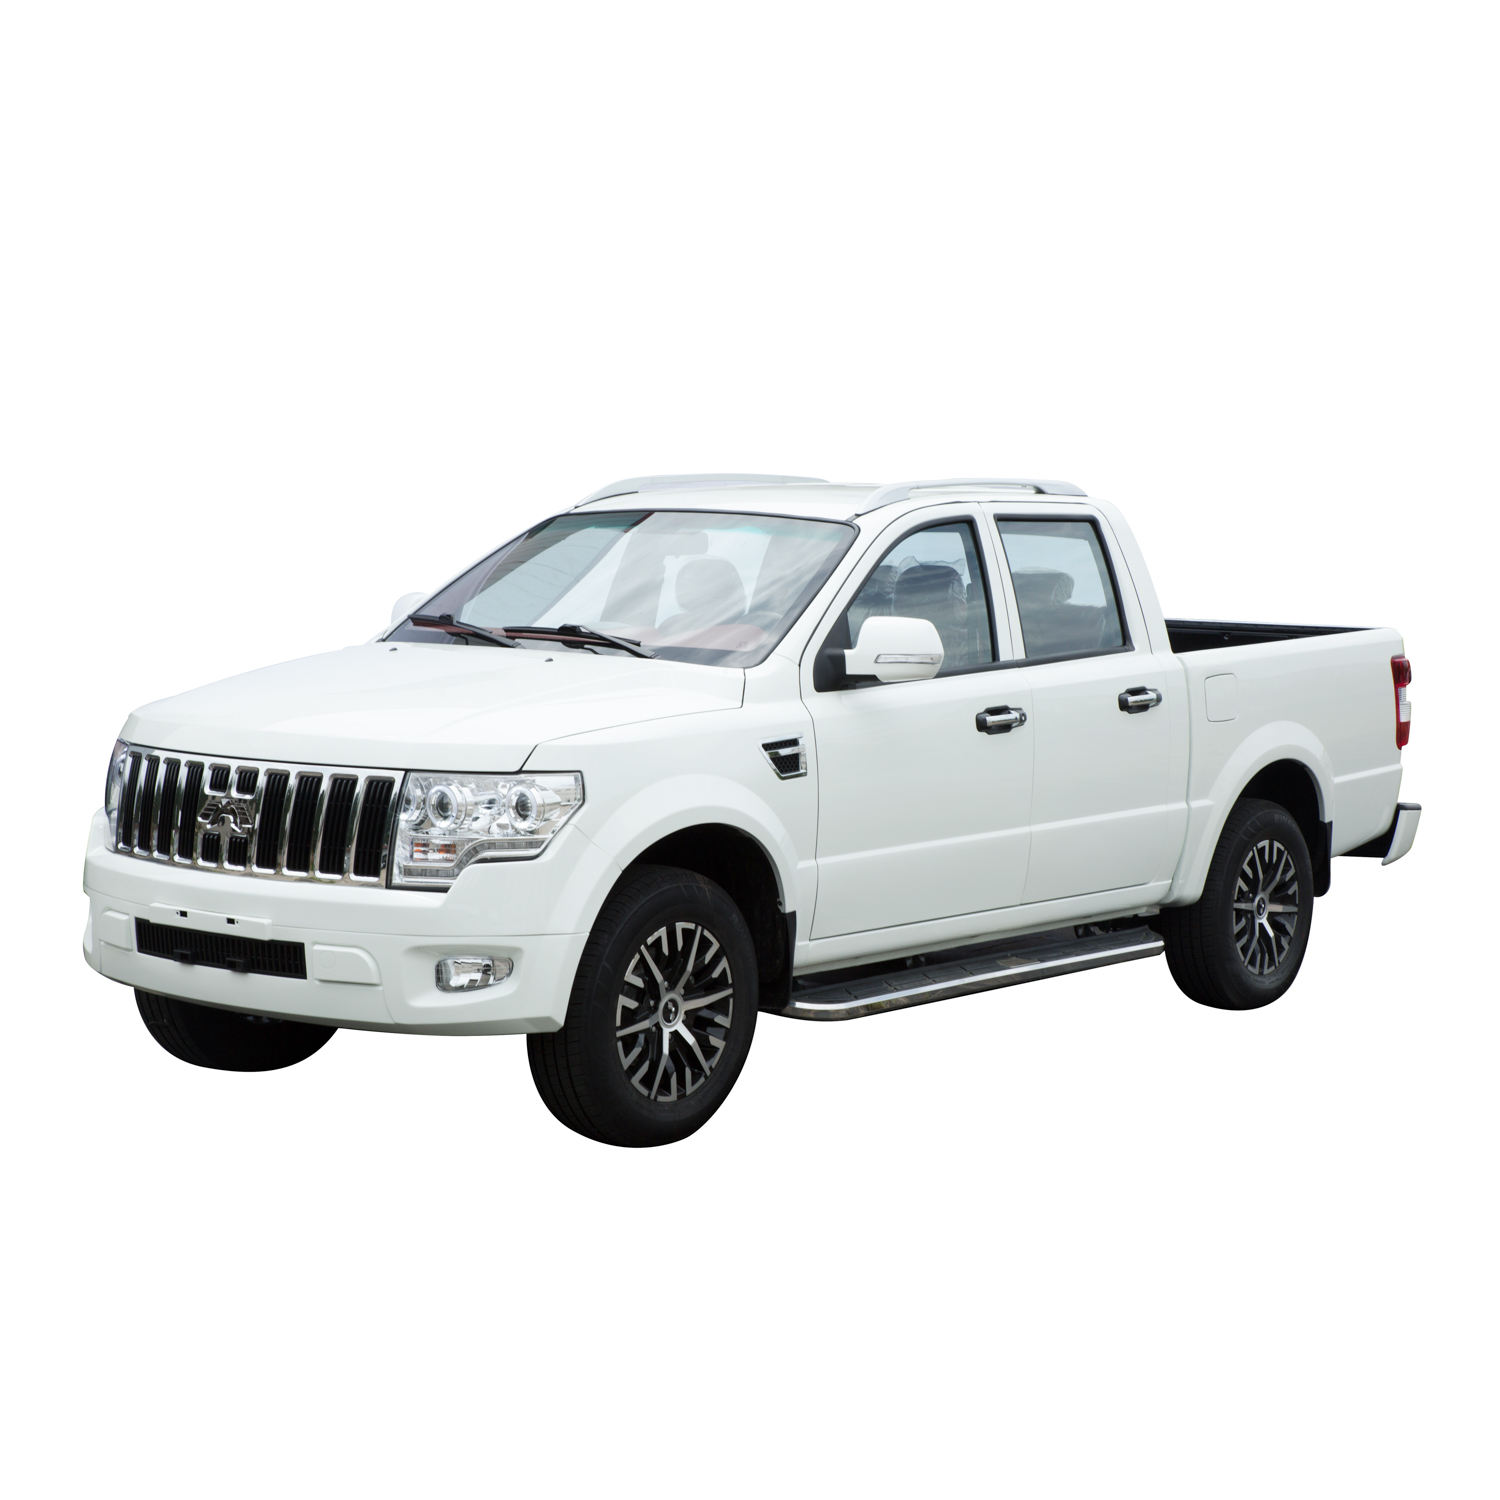 New Energy K150 EV7-1 pickup truck pickup car electric of LHD